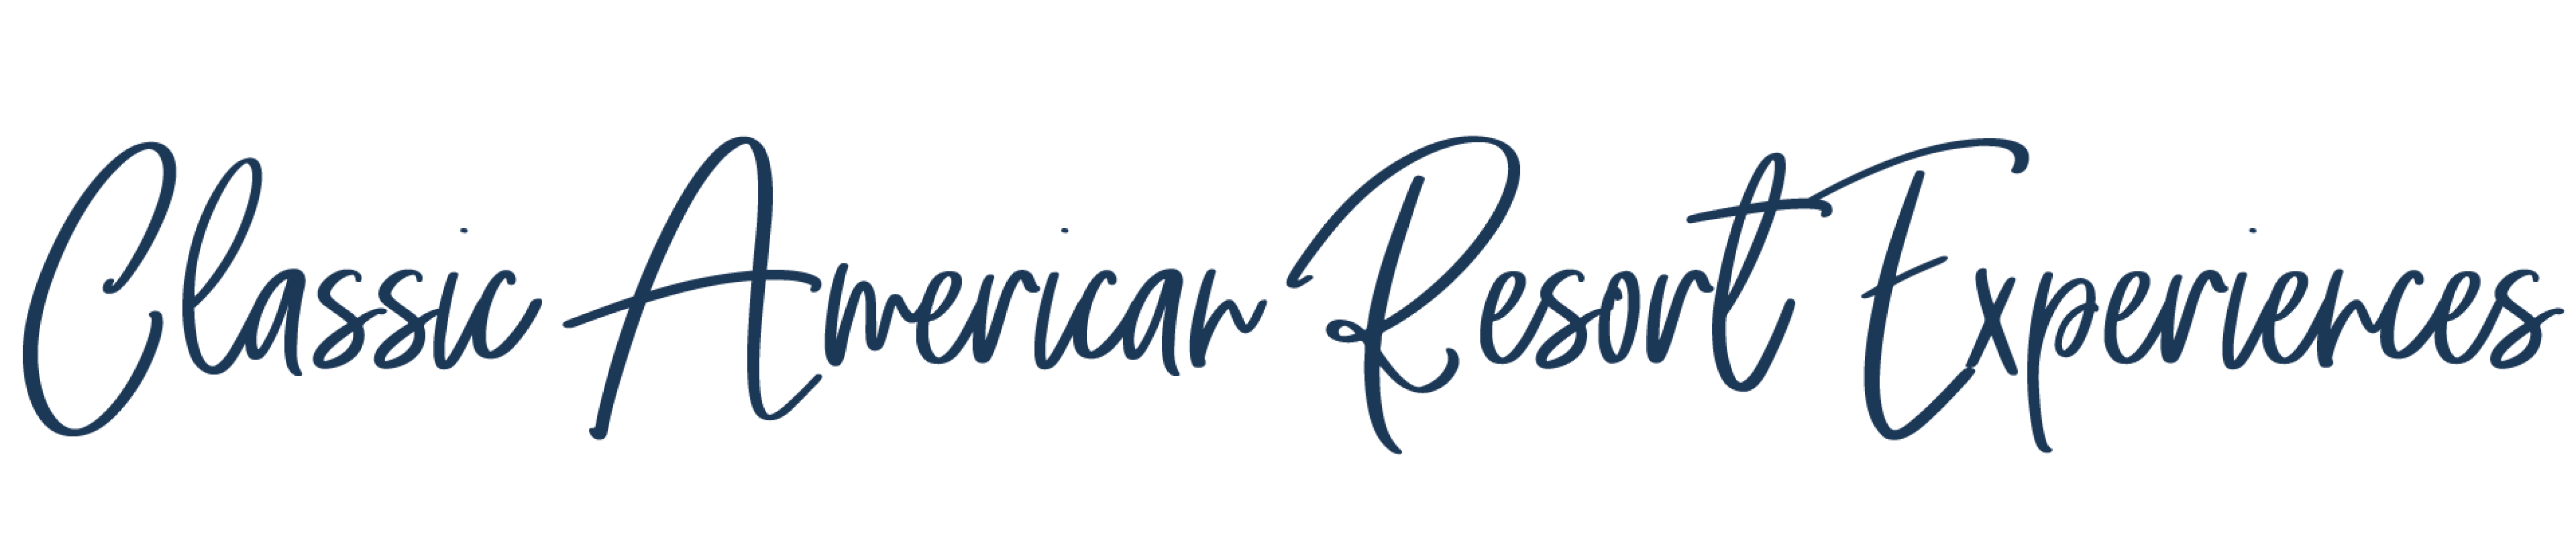 cursive text that reads 'Classic American Resort Experiences'